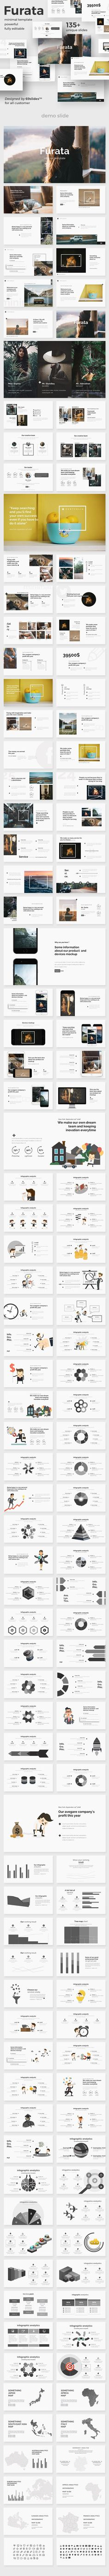 Furata #Creative #Google #Slide Template - Google Slides Presentation Templates